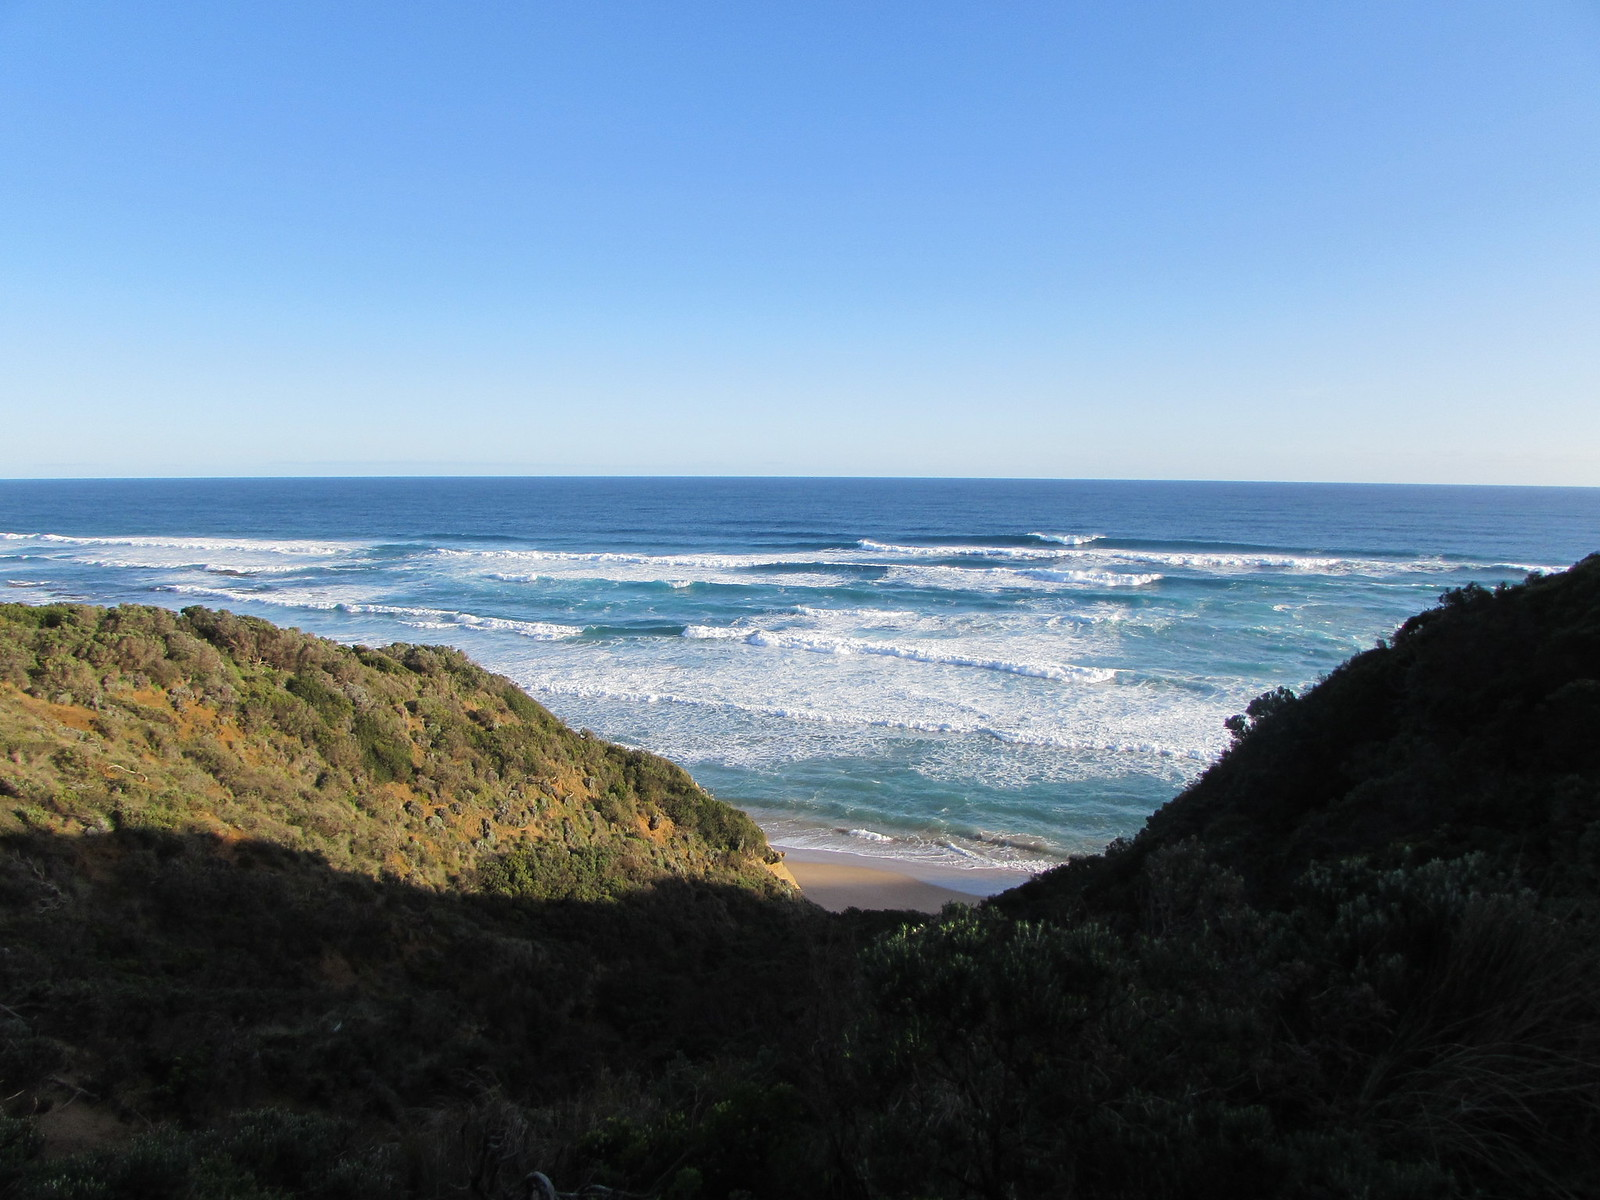 Another overlook of Johanna Beach